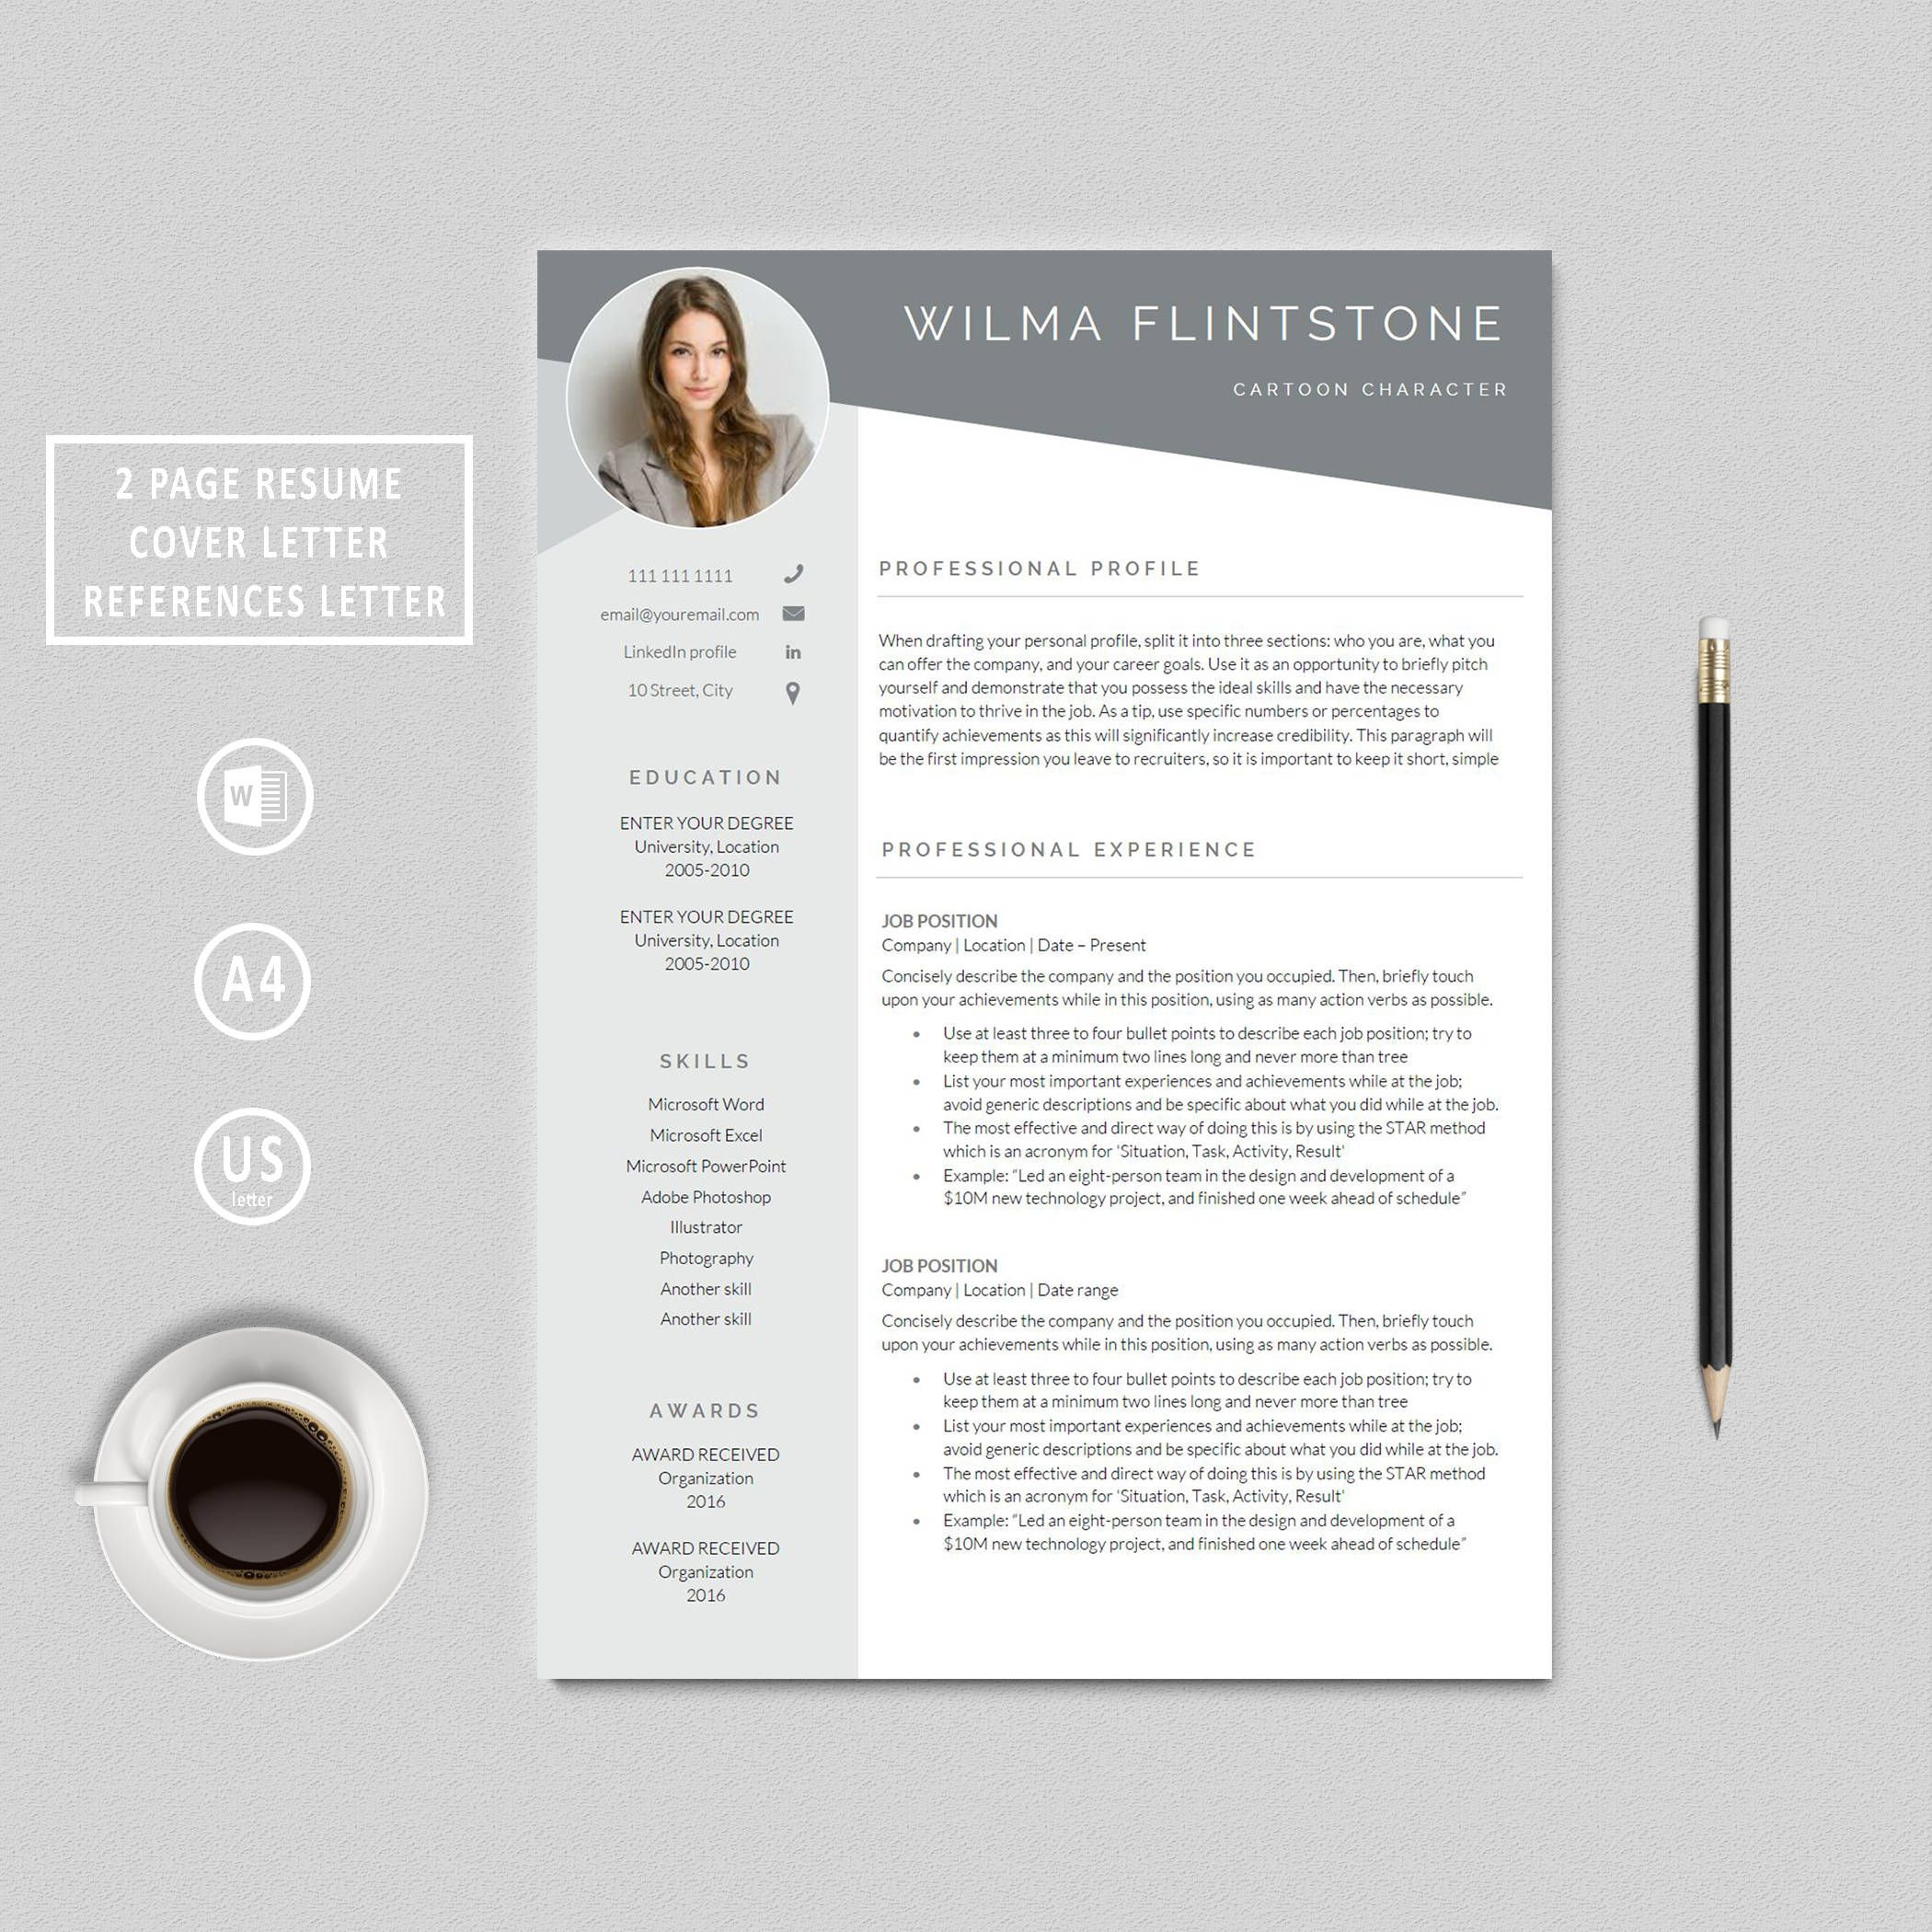 Resume Template | Modern Resume | Creative Resume | Photo Resume |  Professional Resume | Word